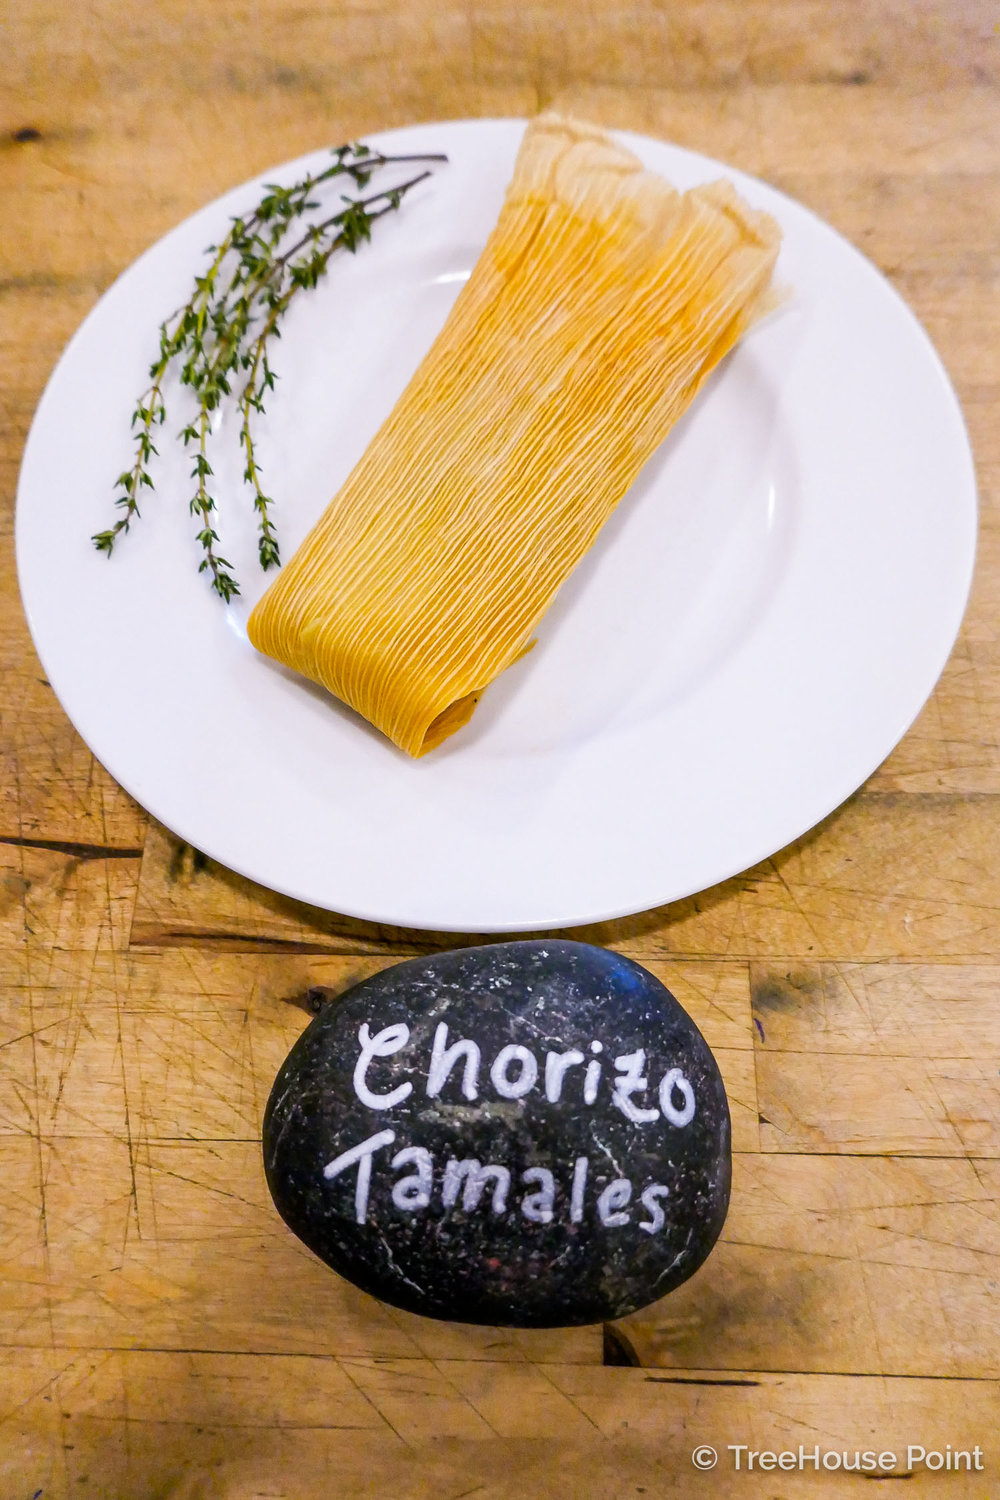 TreeHouse Point Chorizo Tamales